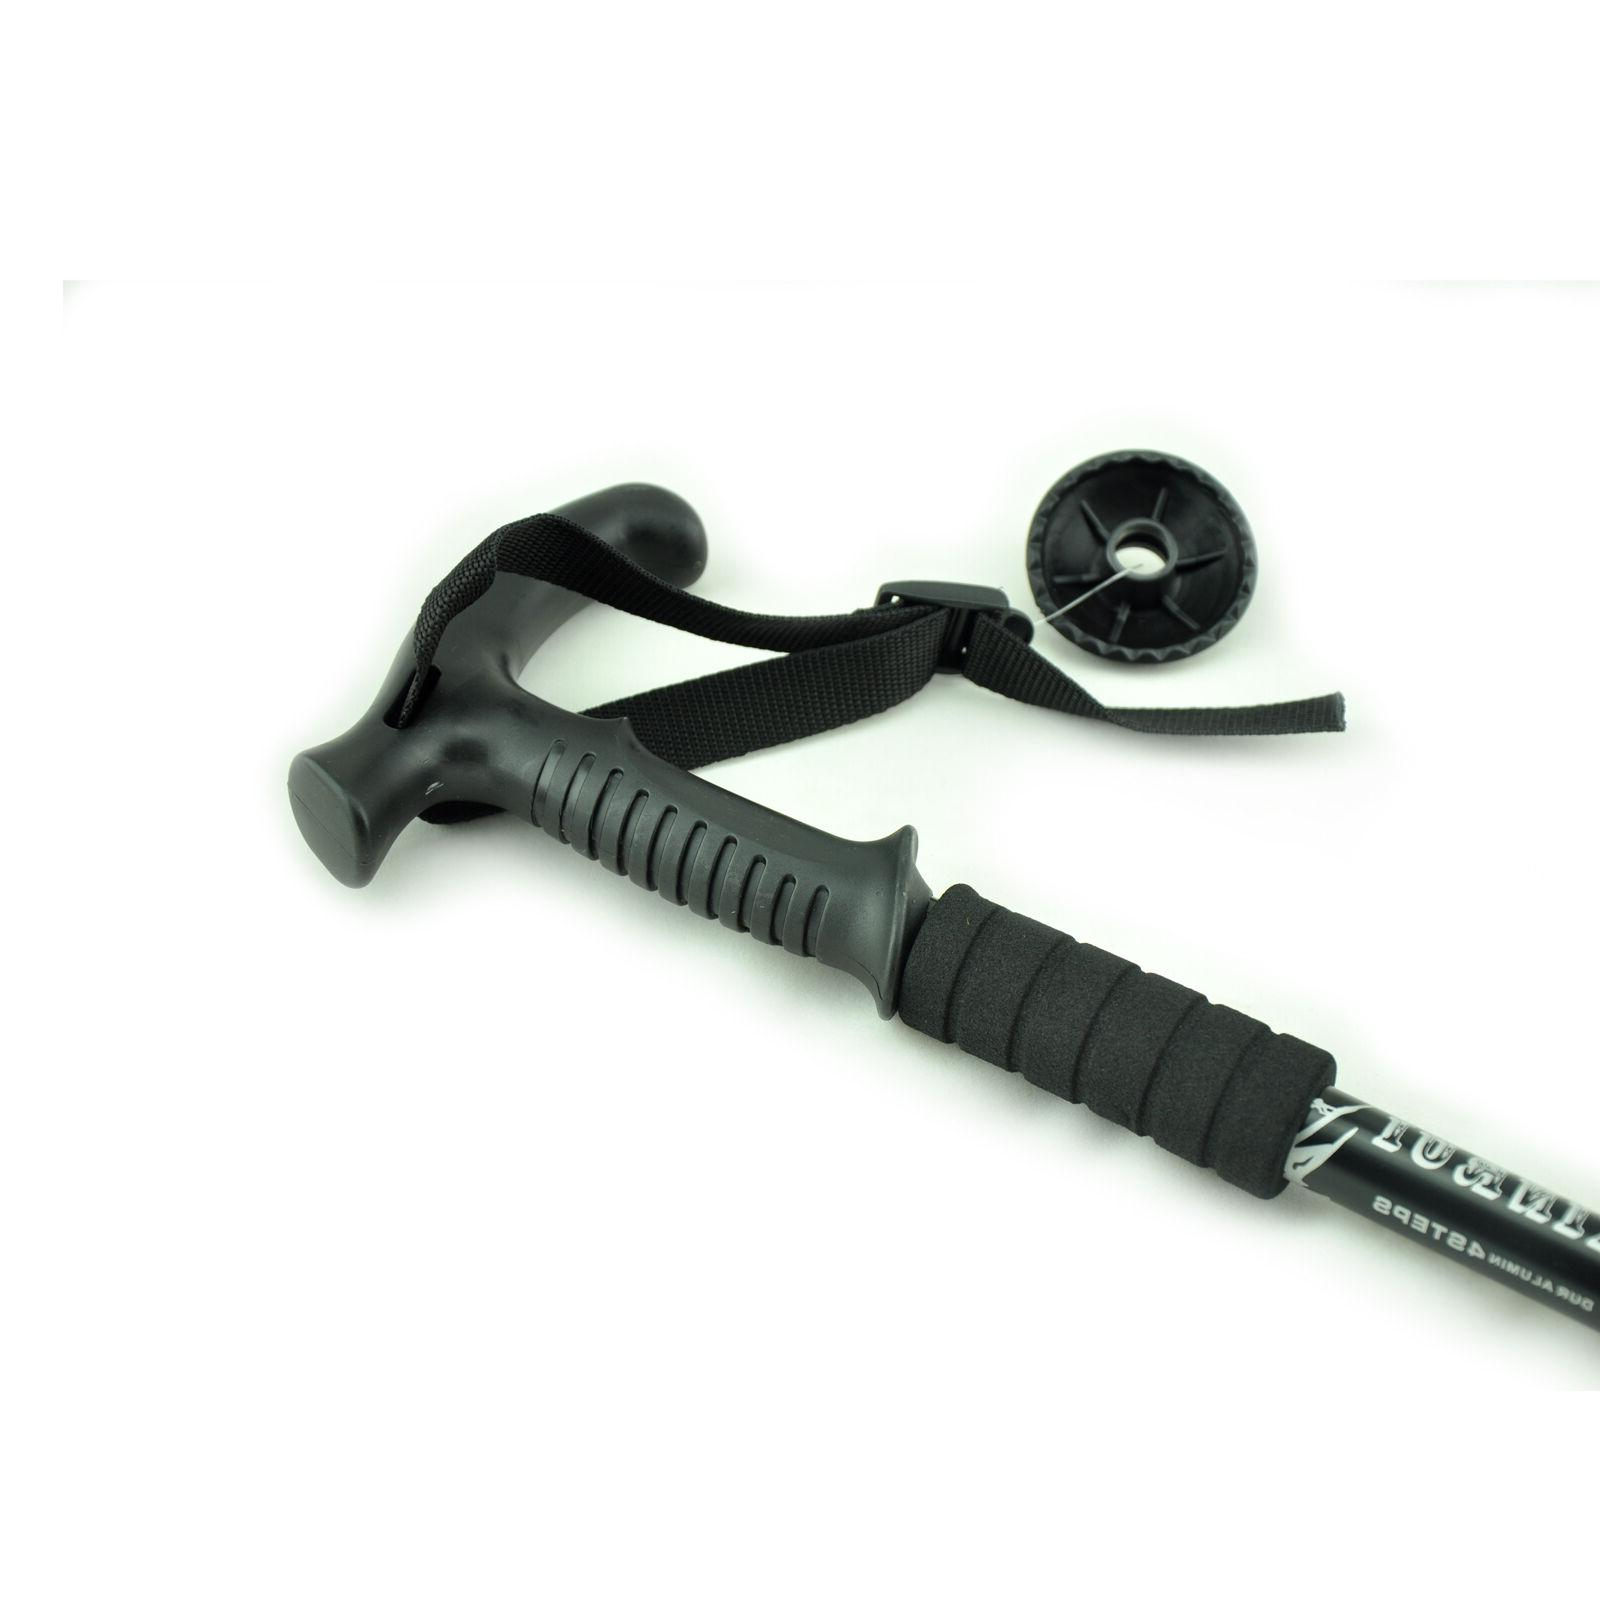 Telescopic Stick Adjustable Length Anti-Shock